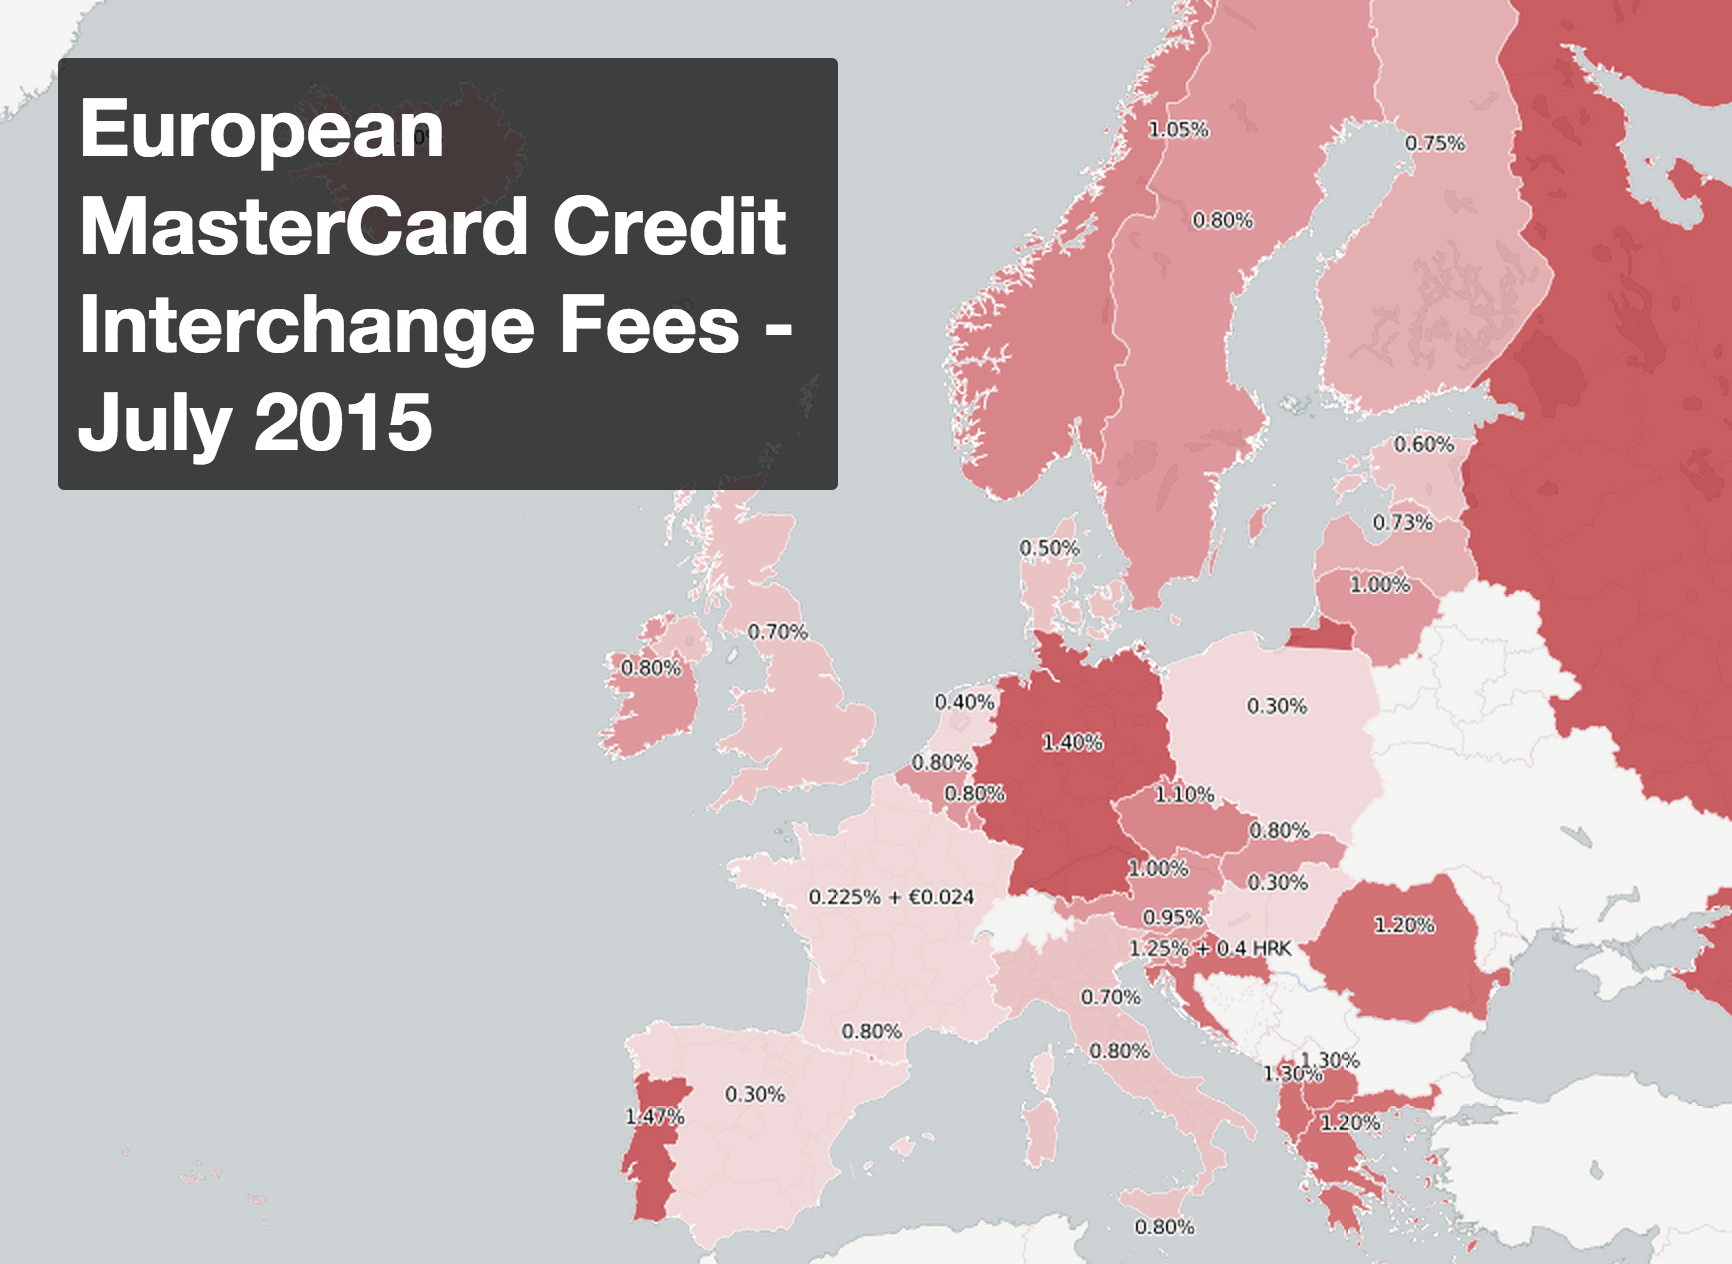 Map of MasterCard Interchange Fees by European Country